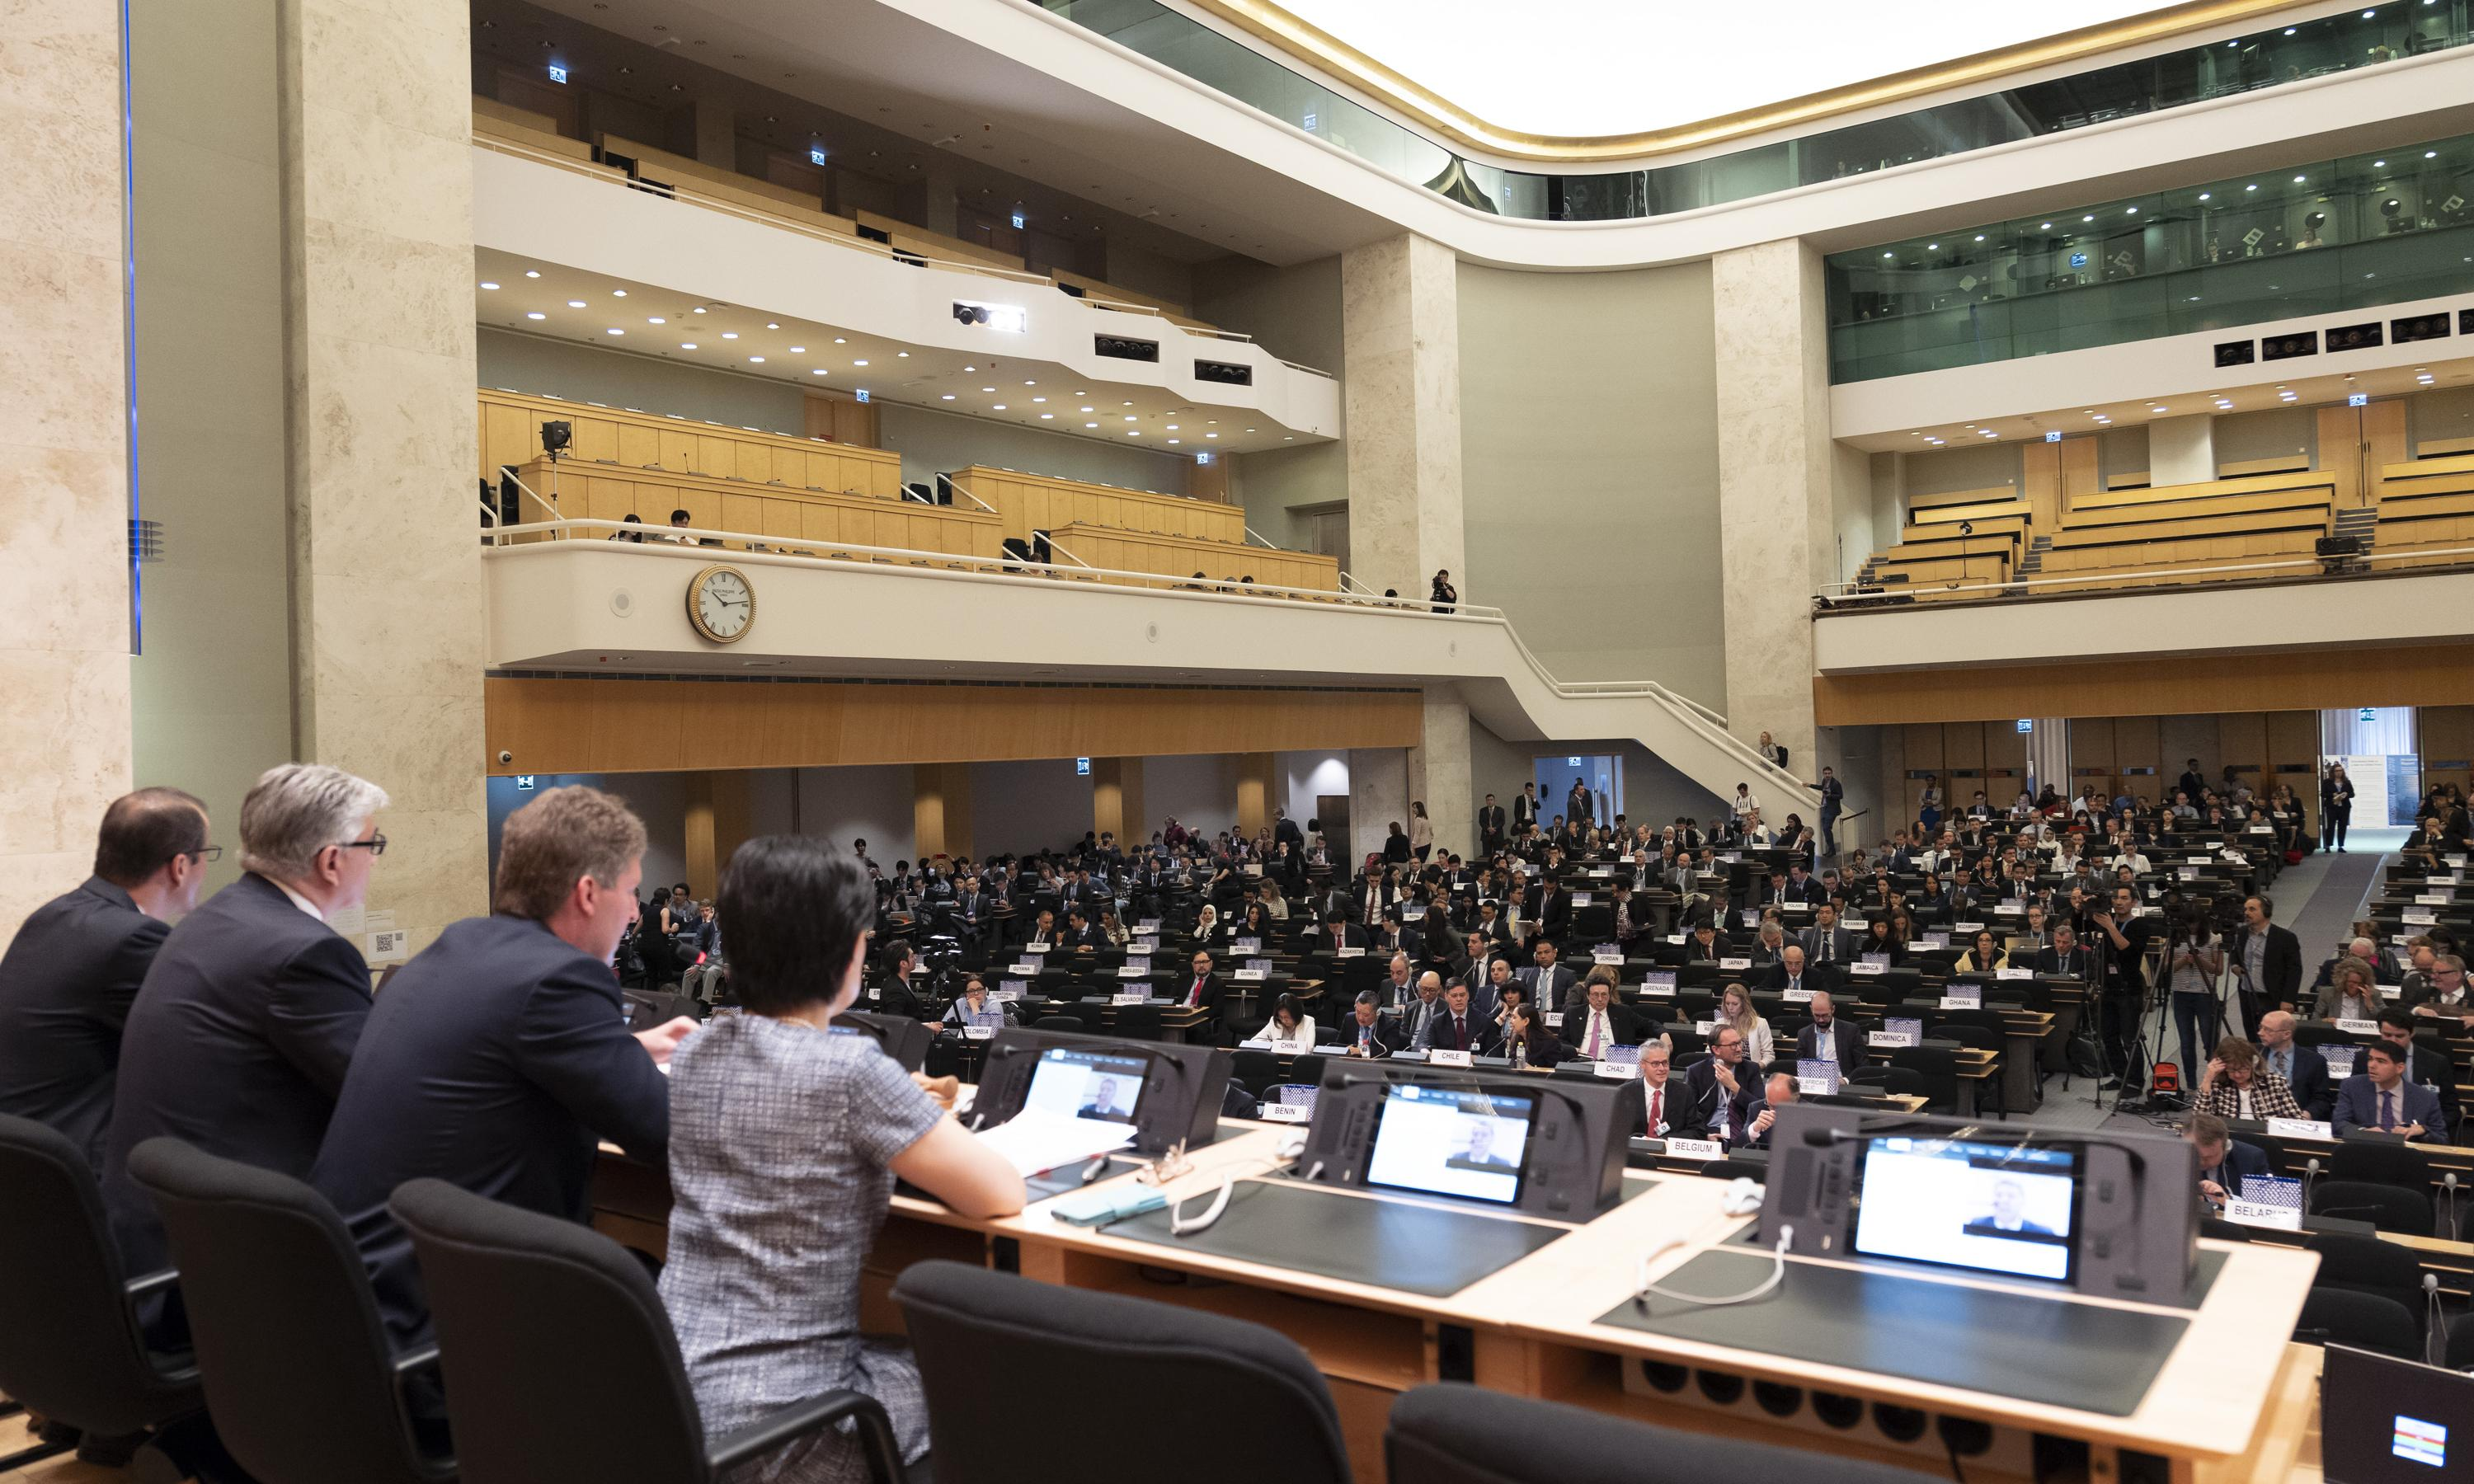 An over the shoulder view during the opening session of the Treat of the Non-Proliferation of Nuclear Weapons.